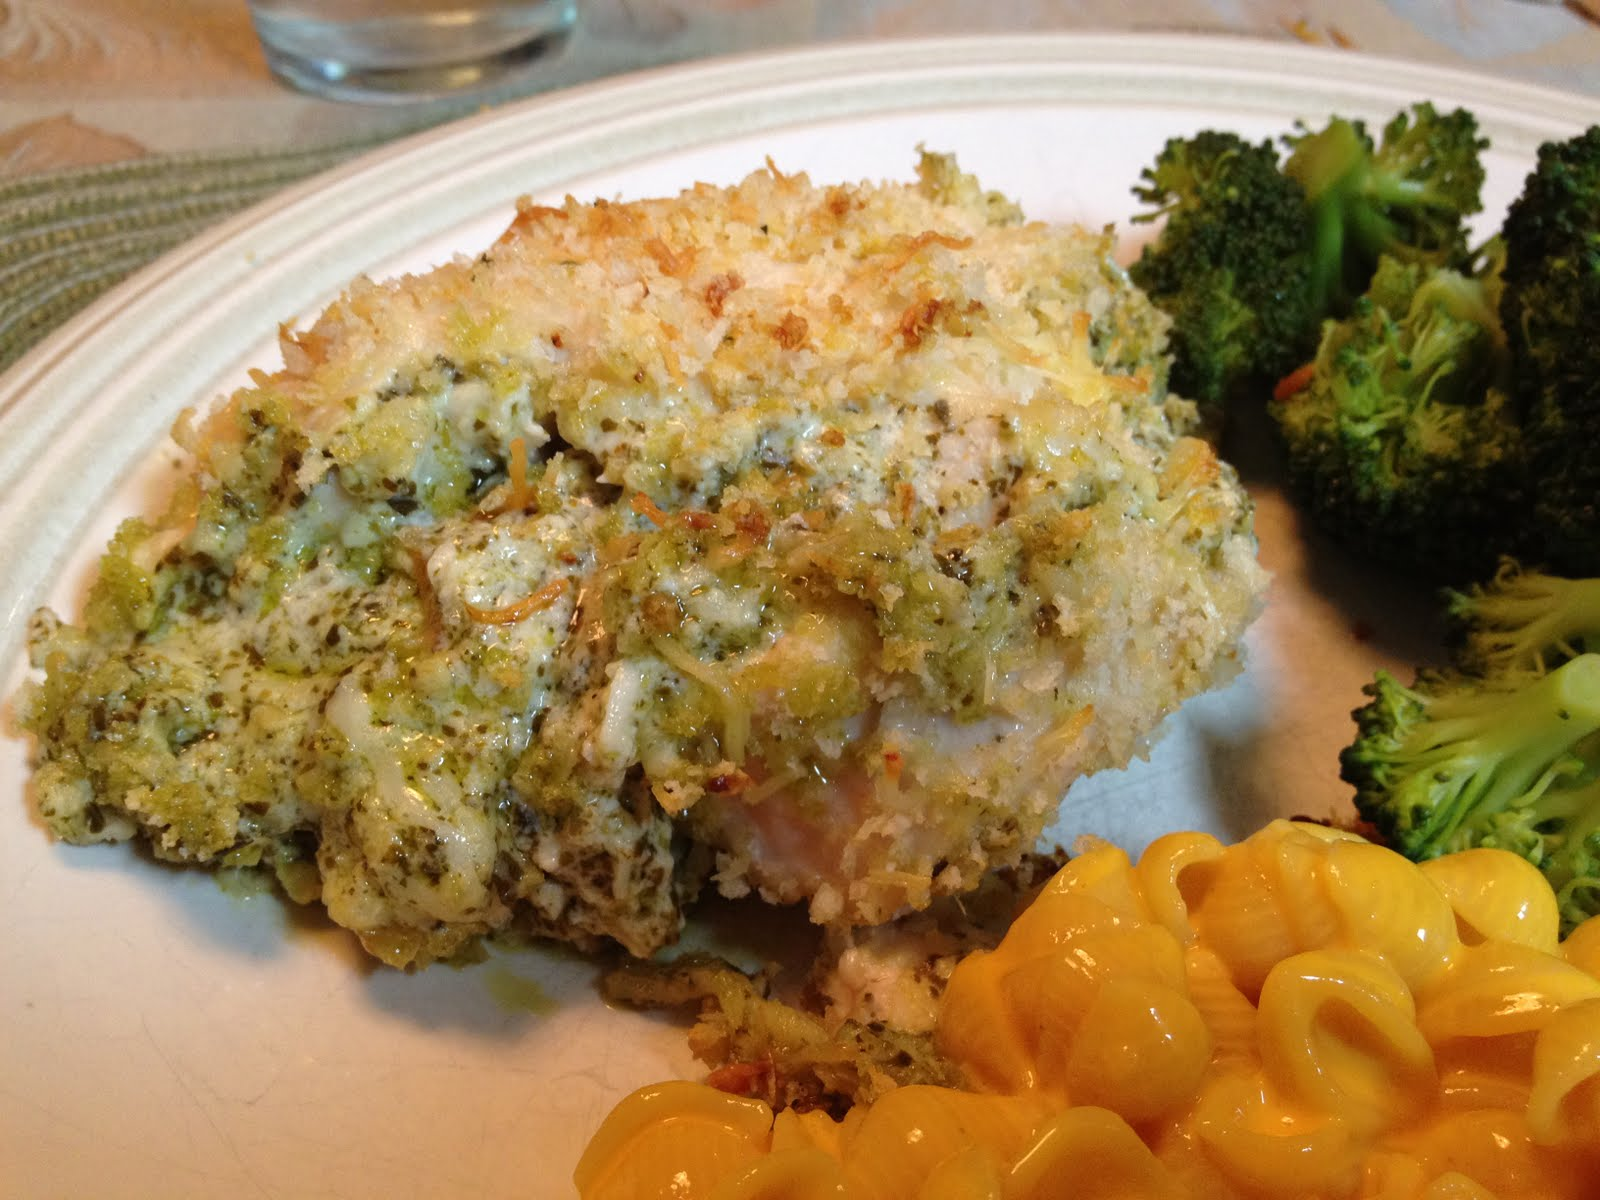 I Steal Great Recipes: Baked Chicken Stuffed with Pesto ...